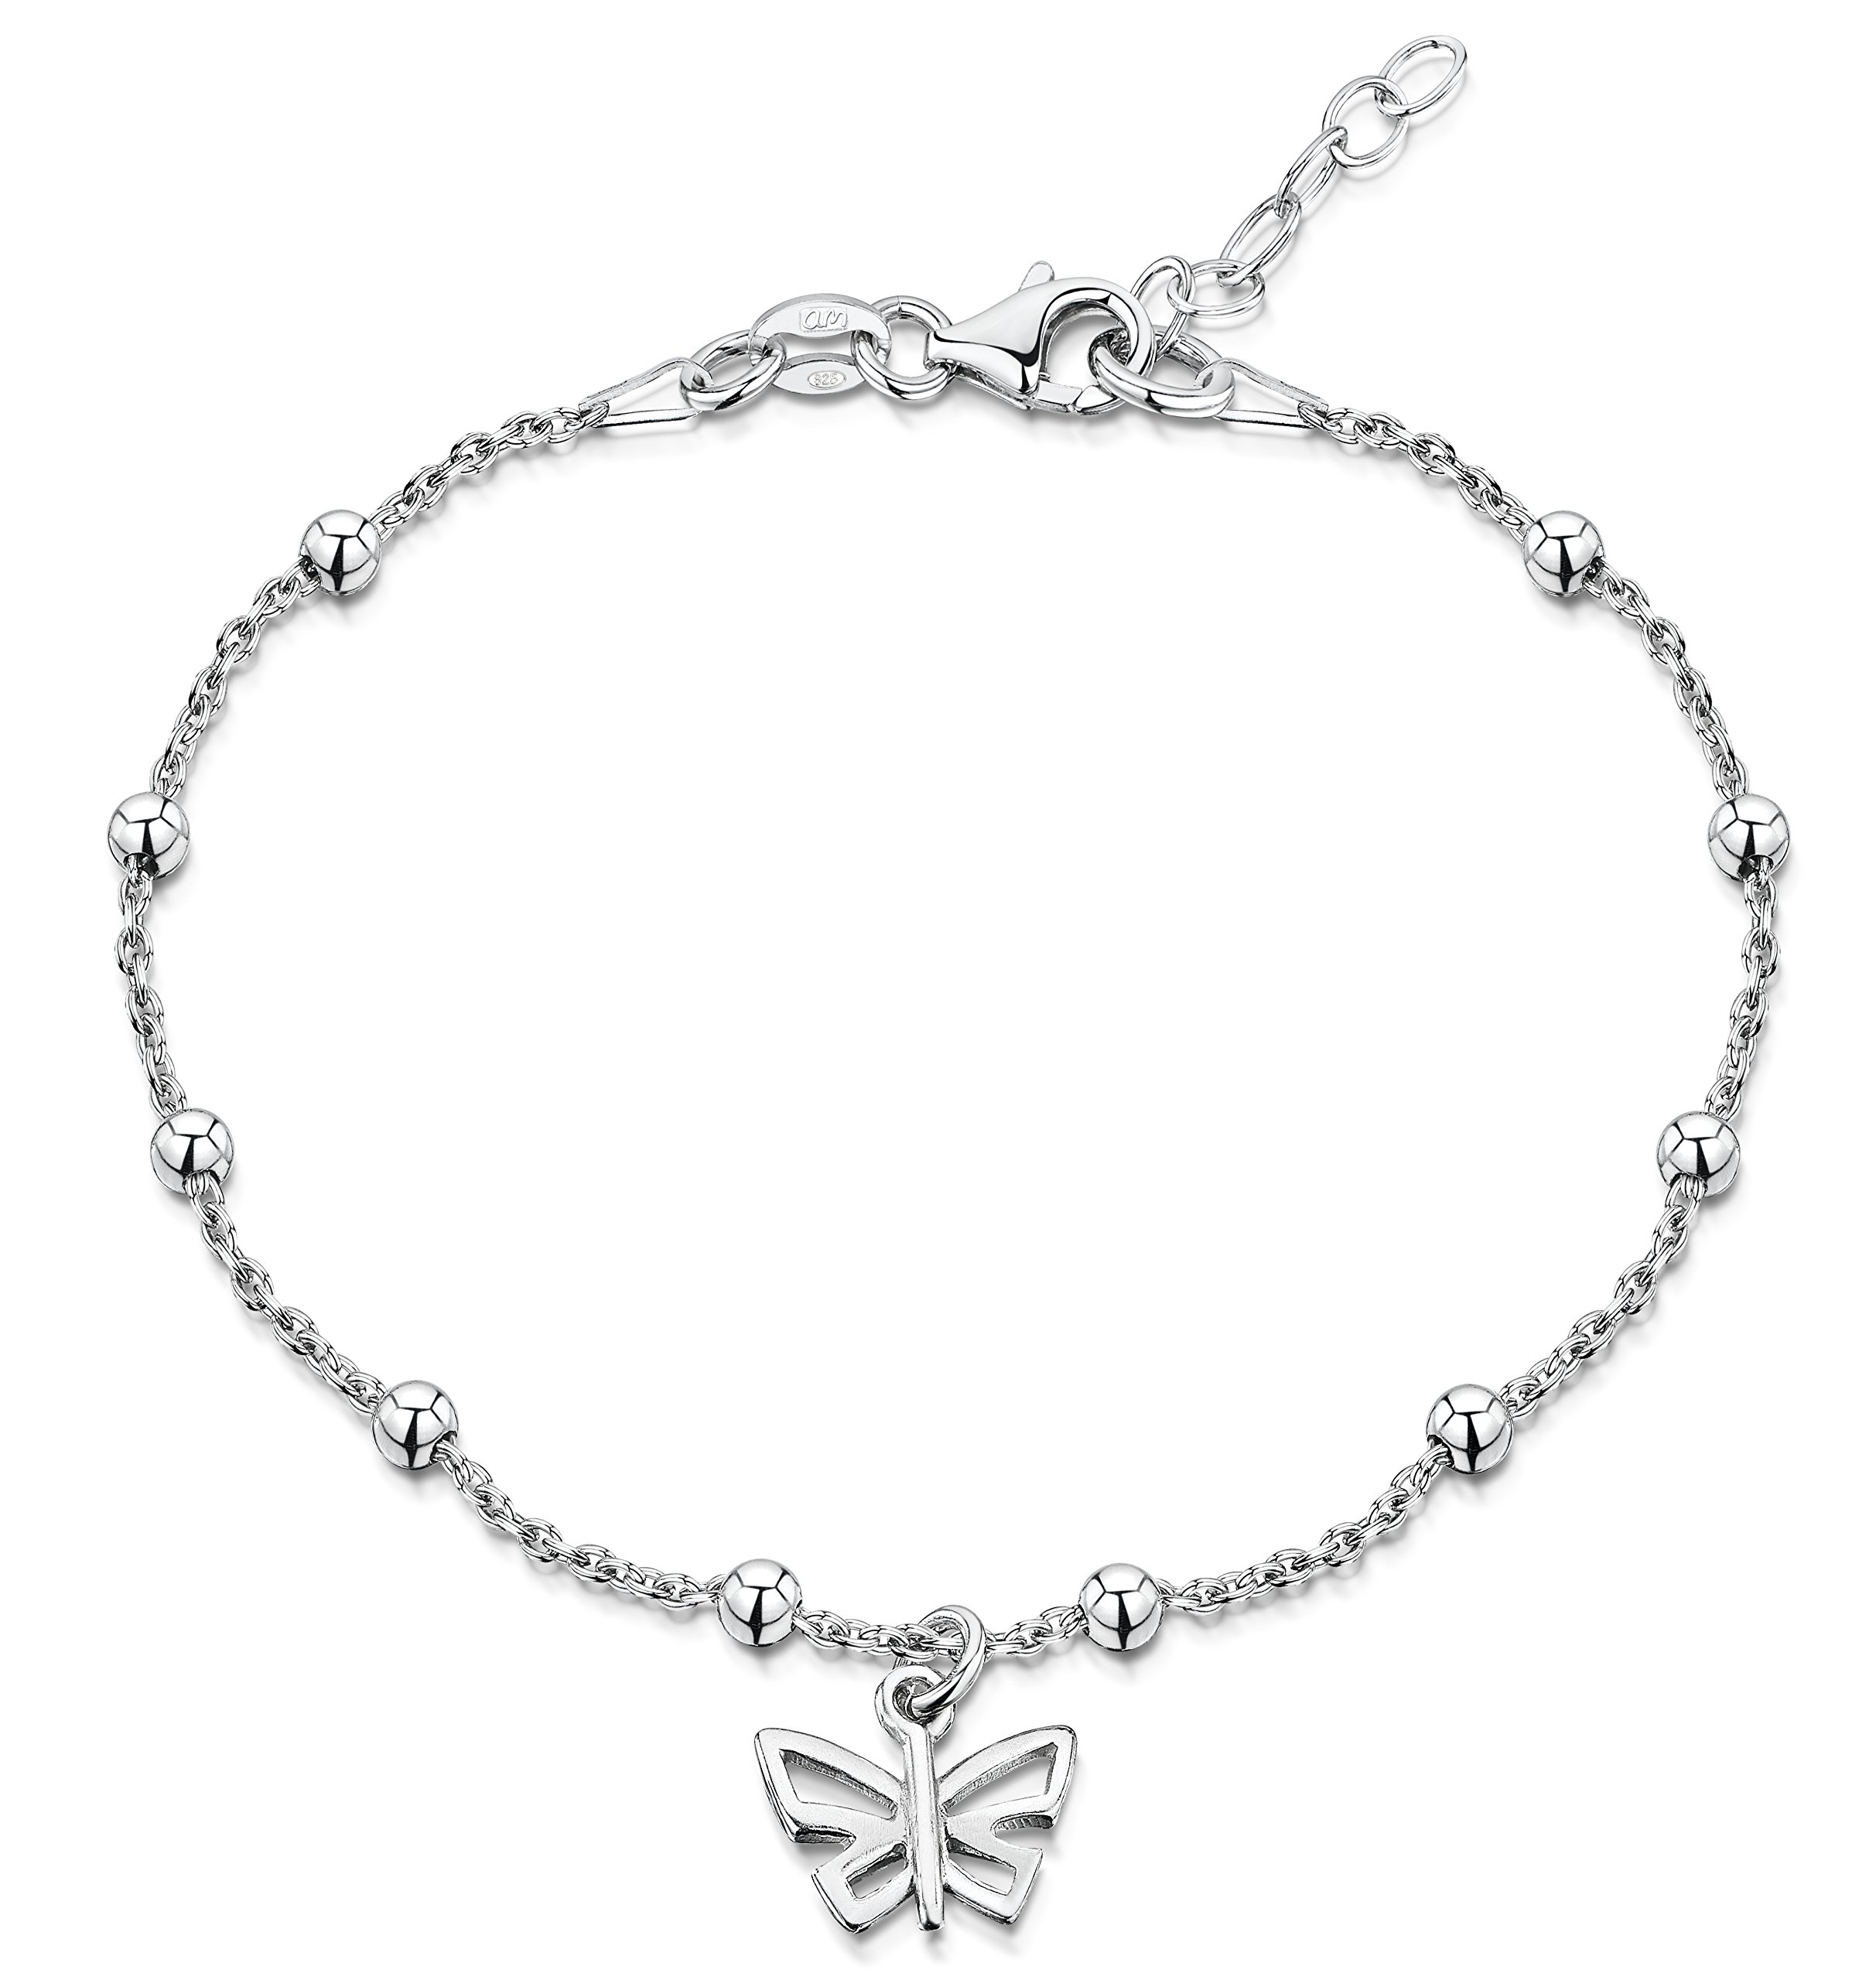 Amberta 925 Sterling Silver Adjustable Ankle Bracelet - 1.4 mm Beaded Trace Chain Anklet With Butterfly Tag - 9'' to 10'' inch - Flexible Fit